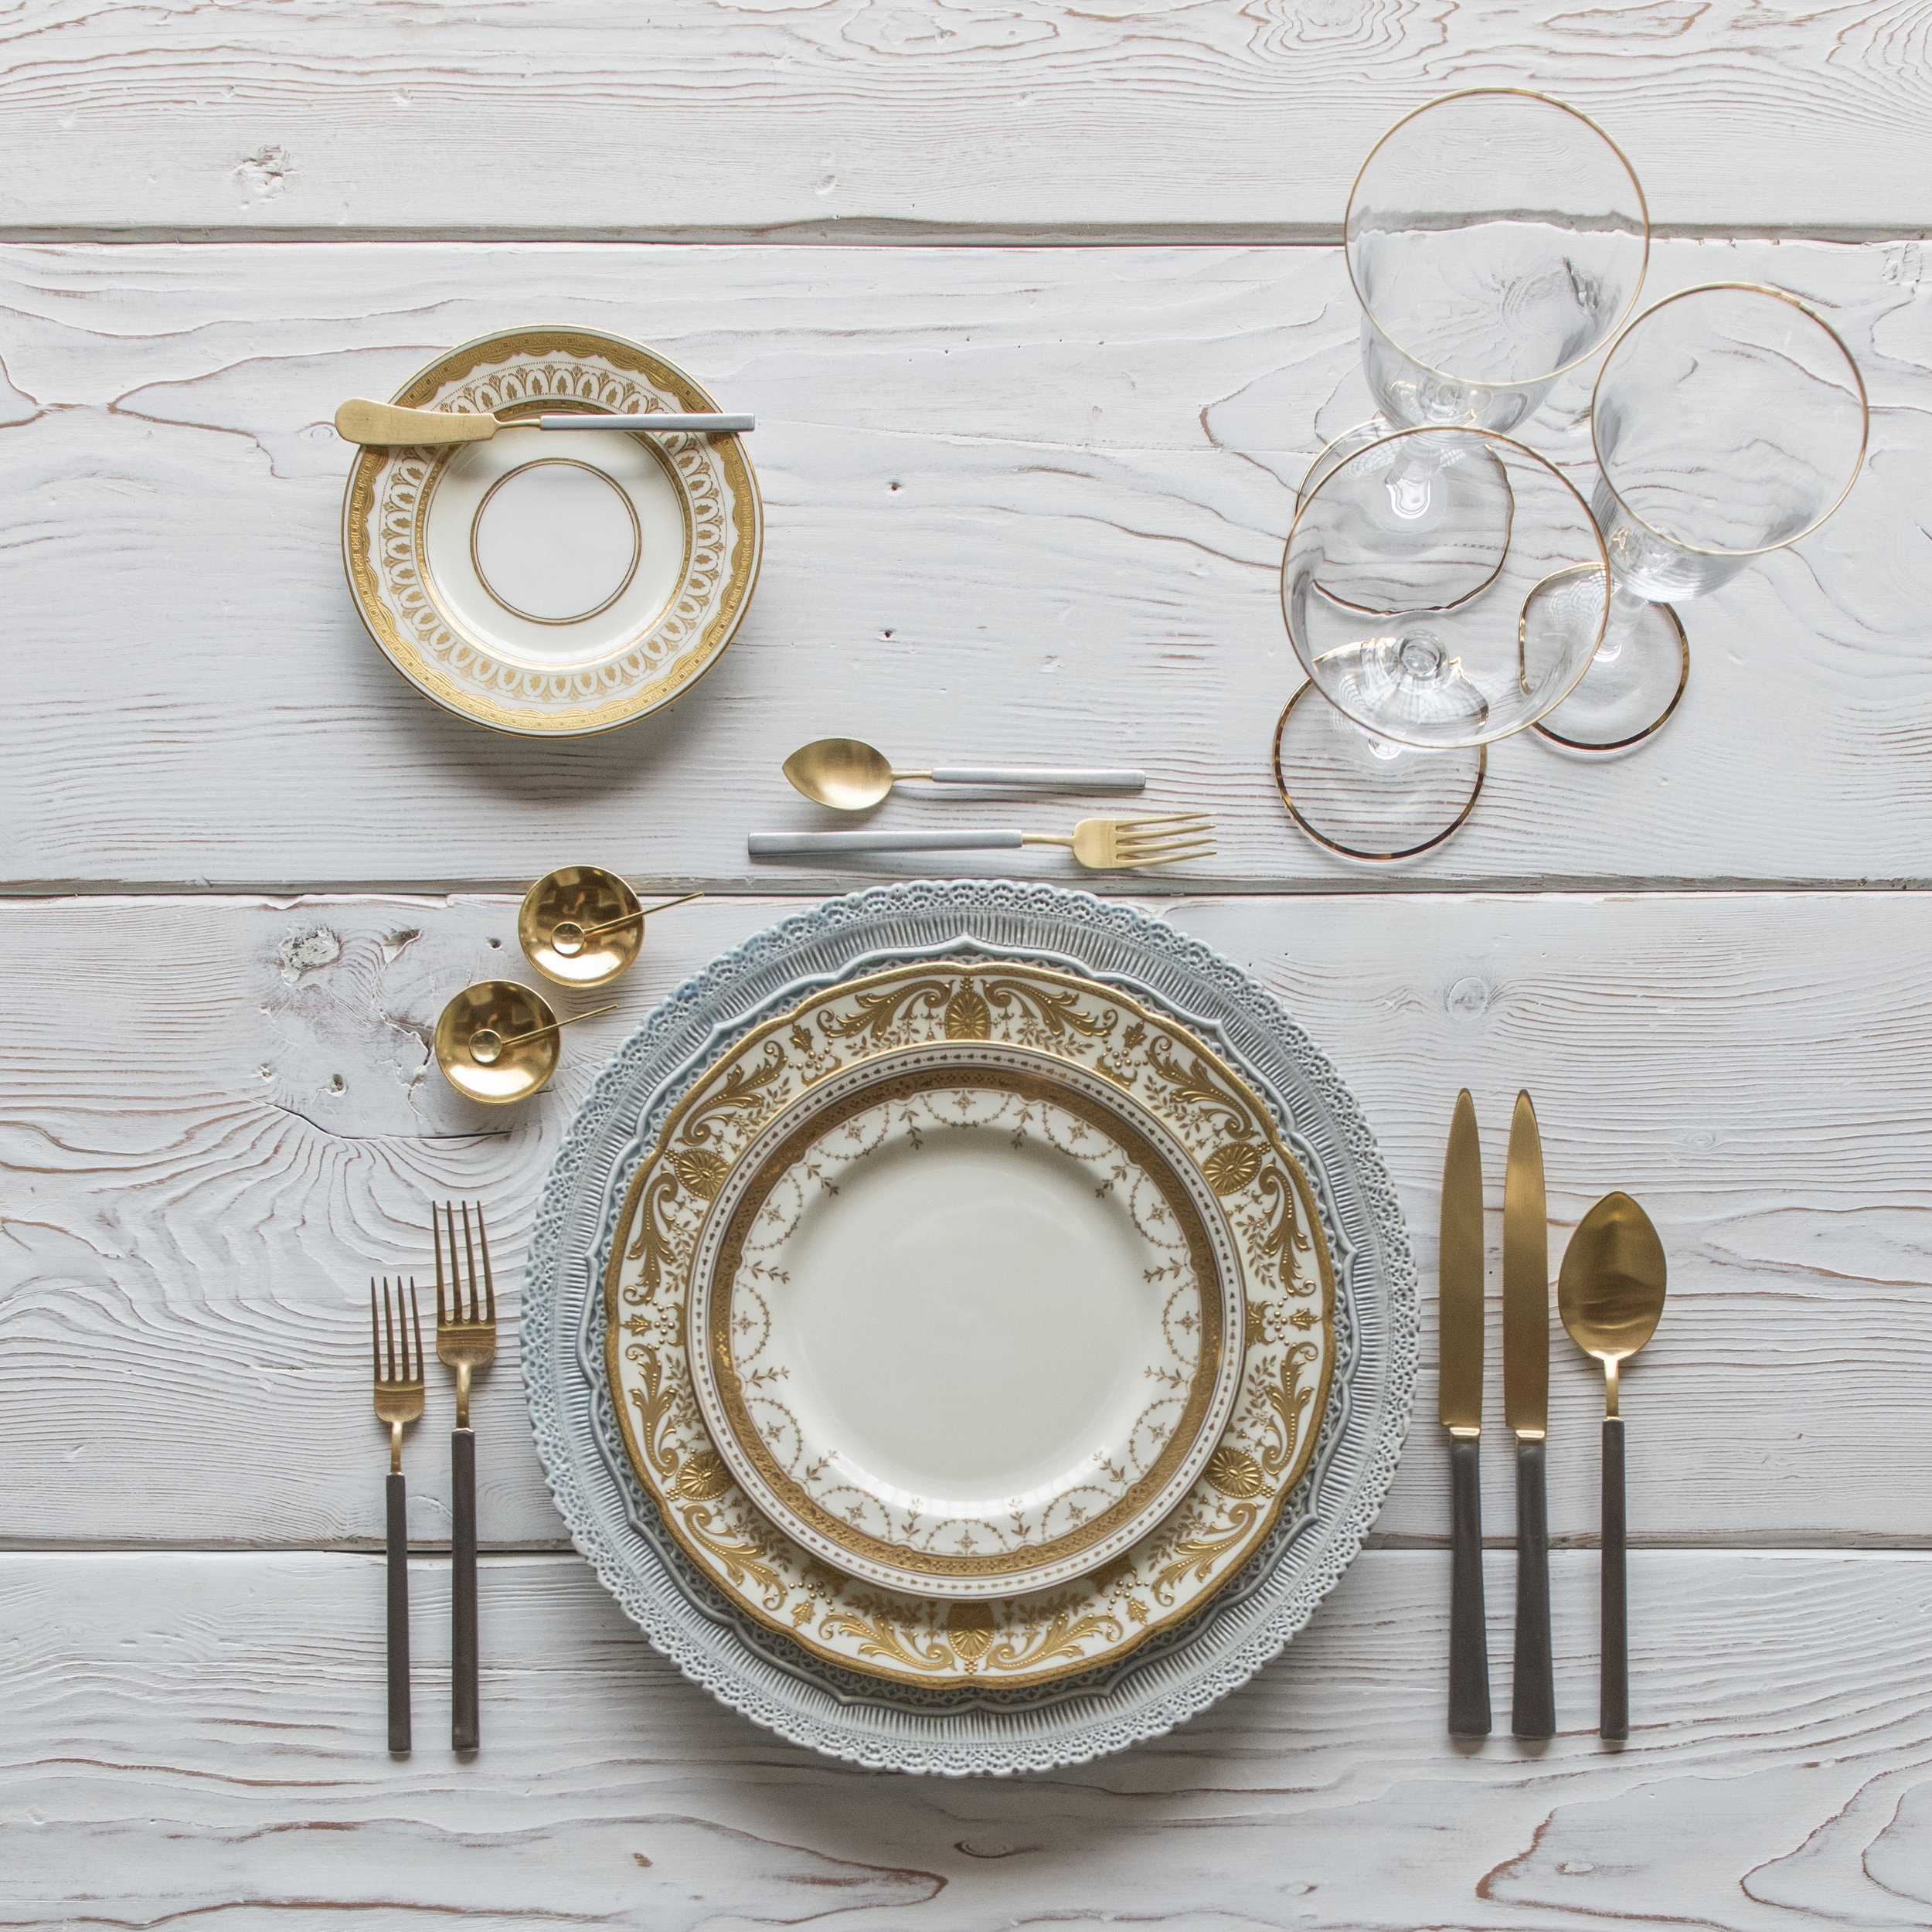 RENT: Lace Chargers in Dusty Blue + Crown Gold Collection Vintage China + Axel Flatware in Matte 24k Gold/Silver + Chloe 24k Gold Rimmed Stemware + 14k Gold Salt Cellars + Tiny Gold Spoons   SHOP: Chloe 24k Gold Rimmed Stemware + 14k Gold Salt Cellars + Tiny Gold Spoons